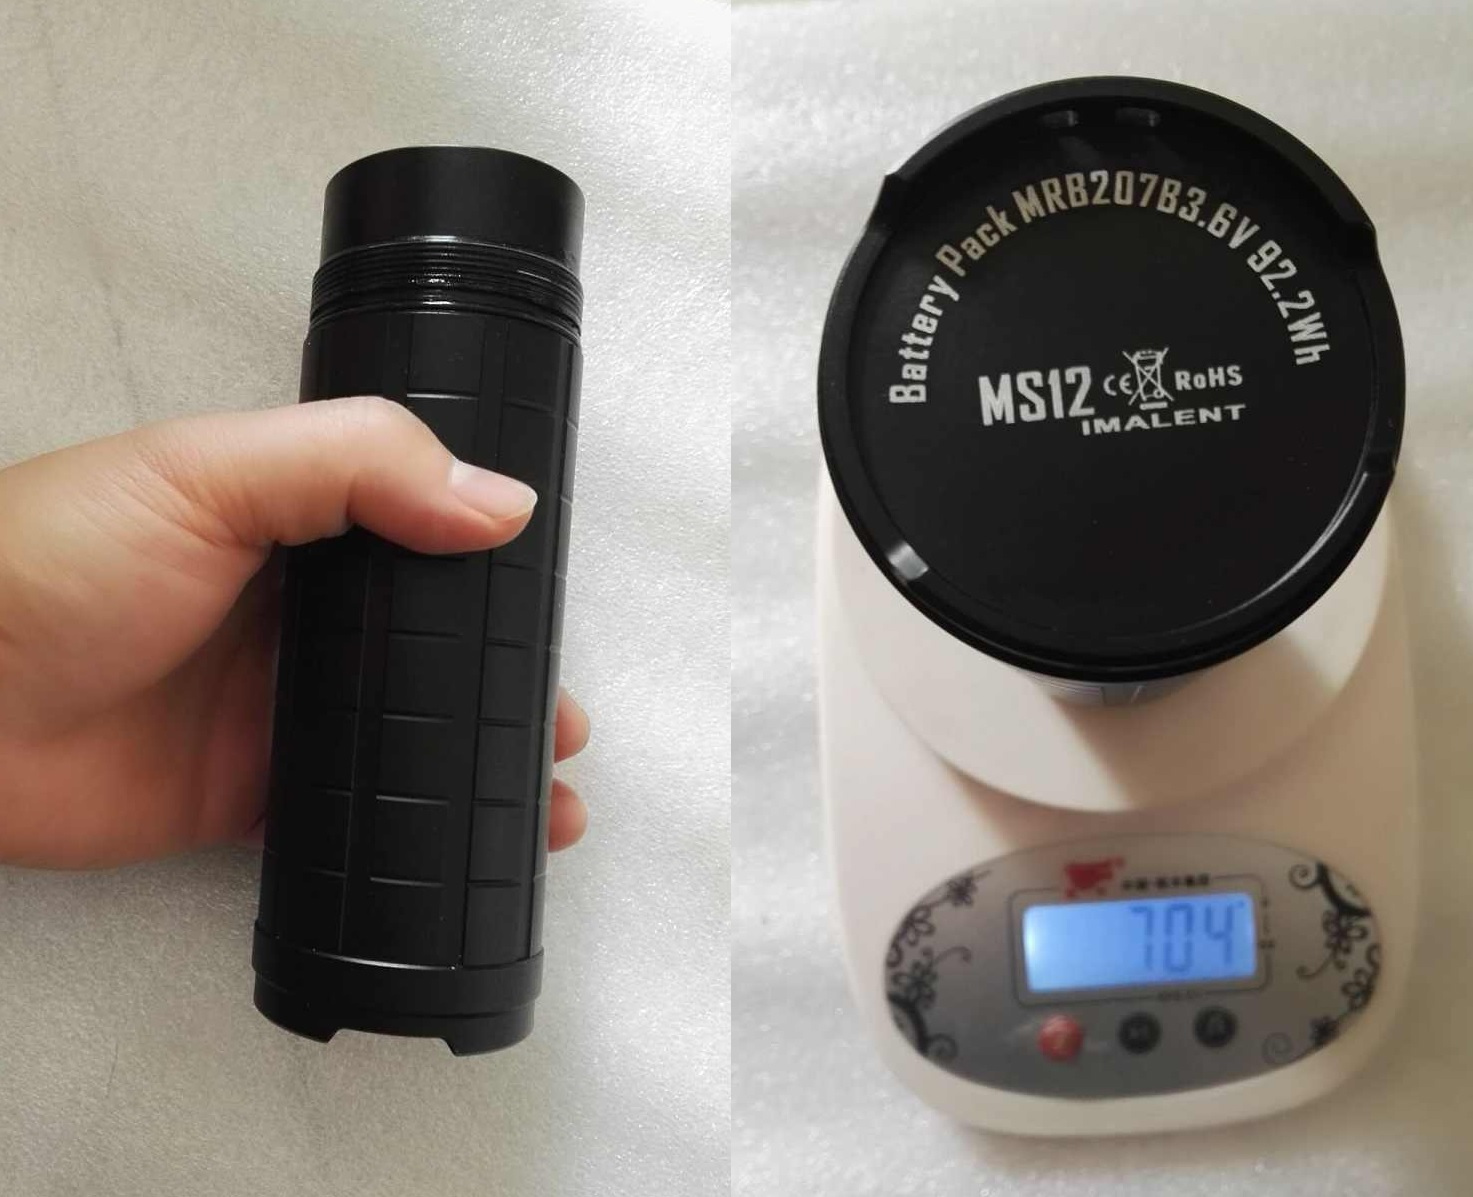 ms12 battery pack